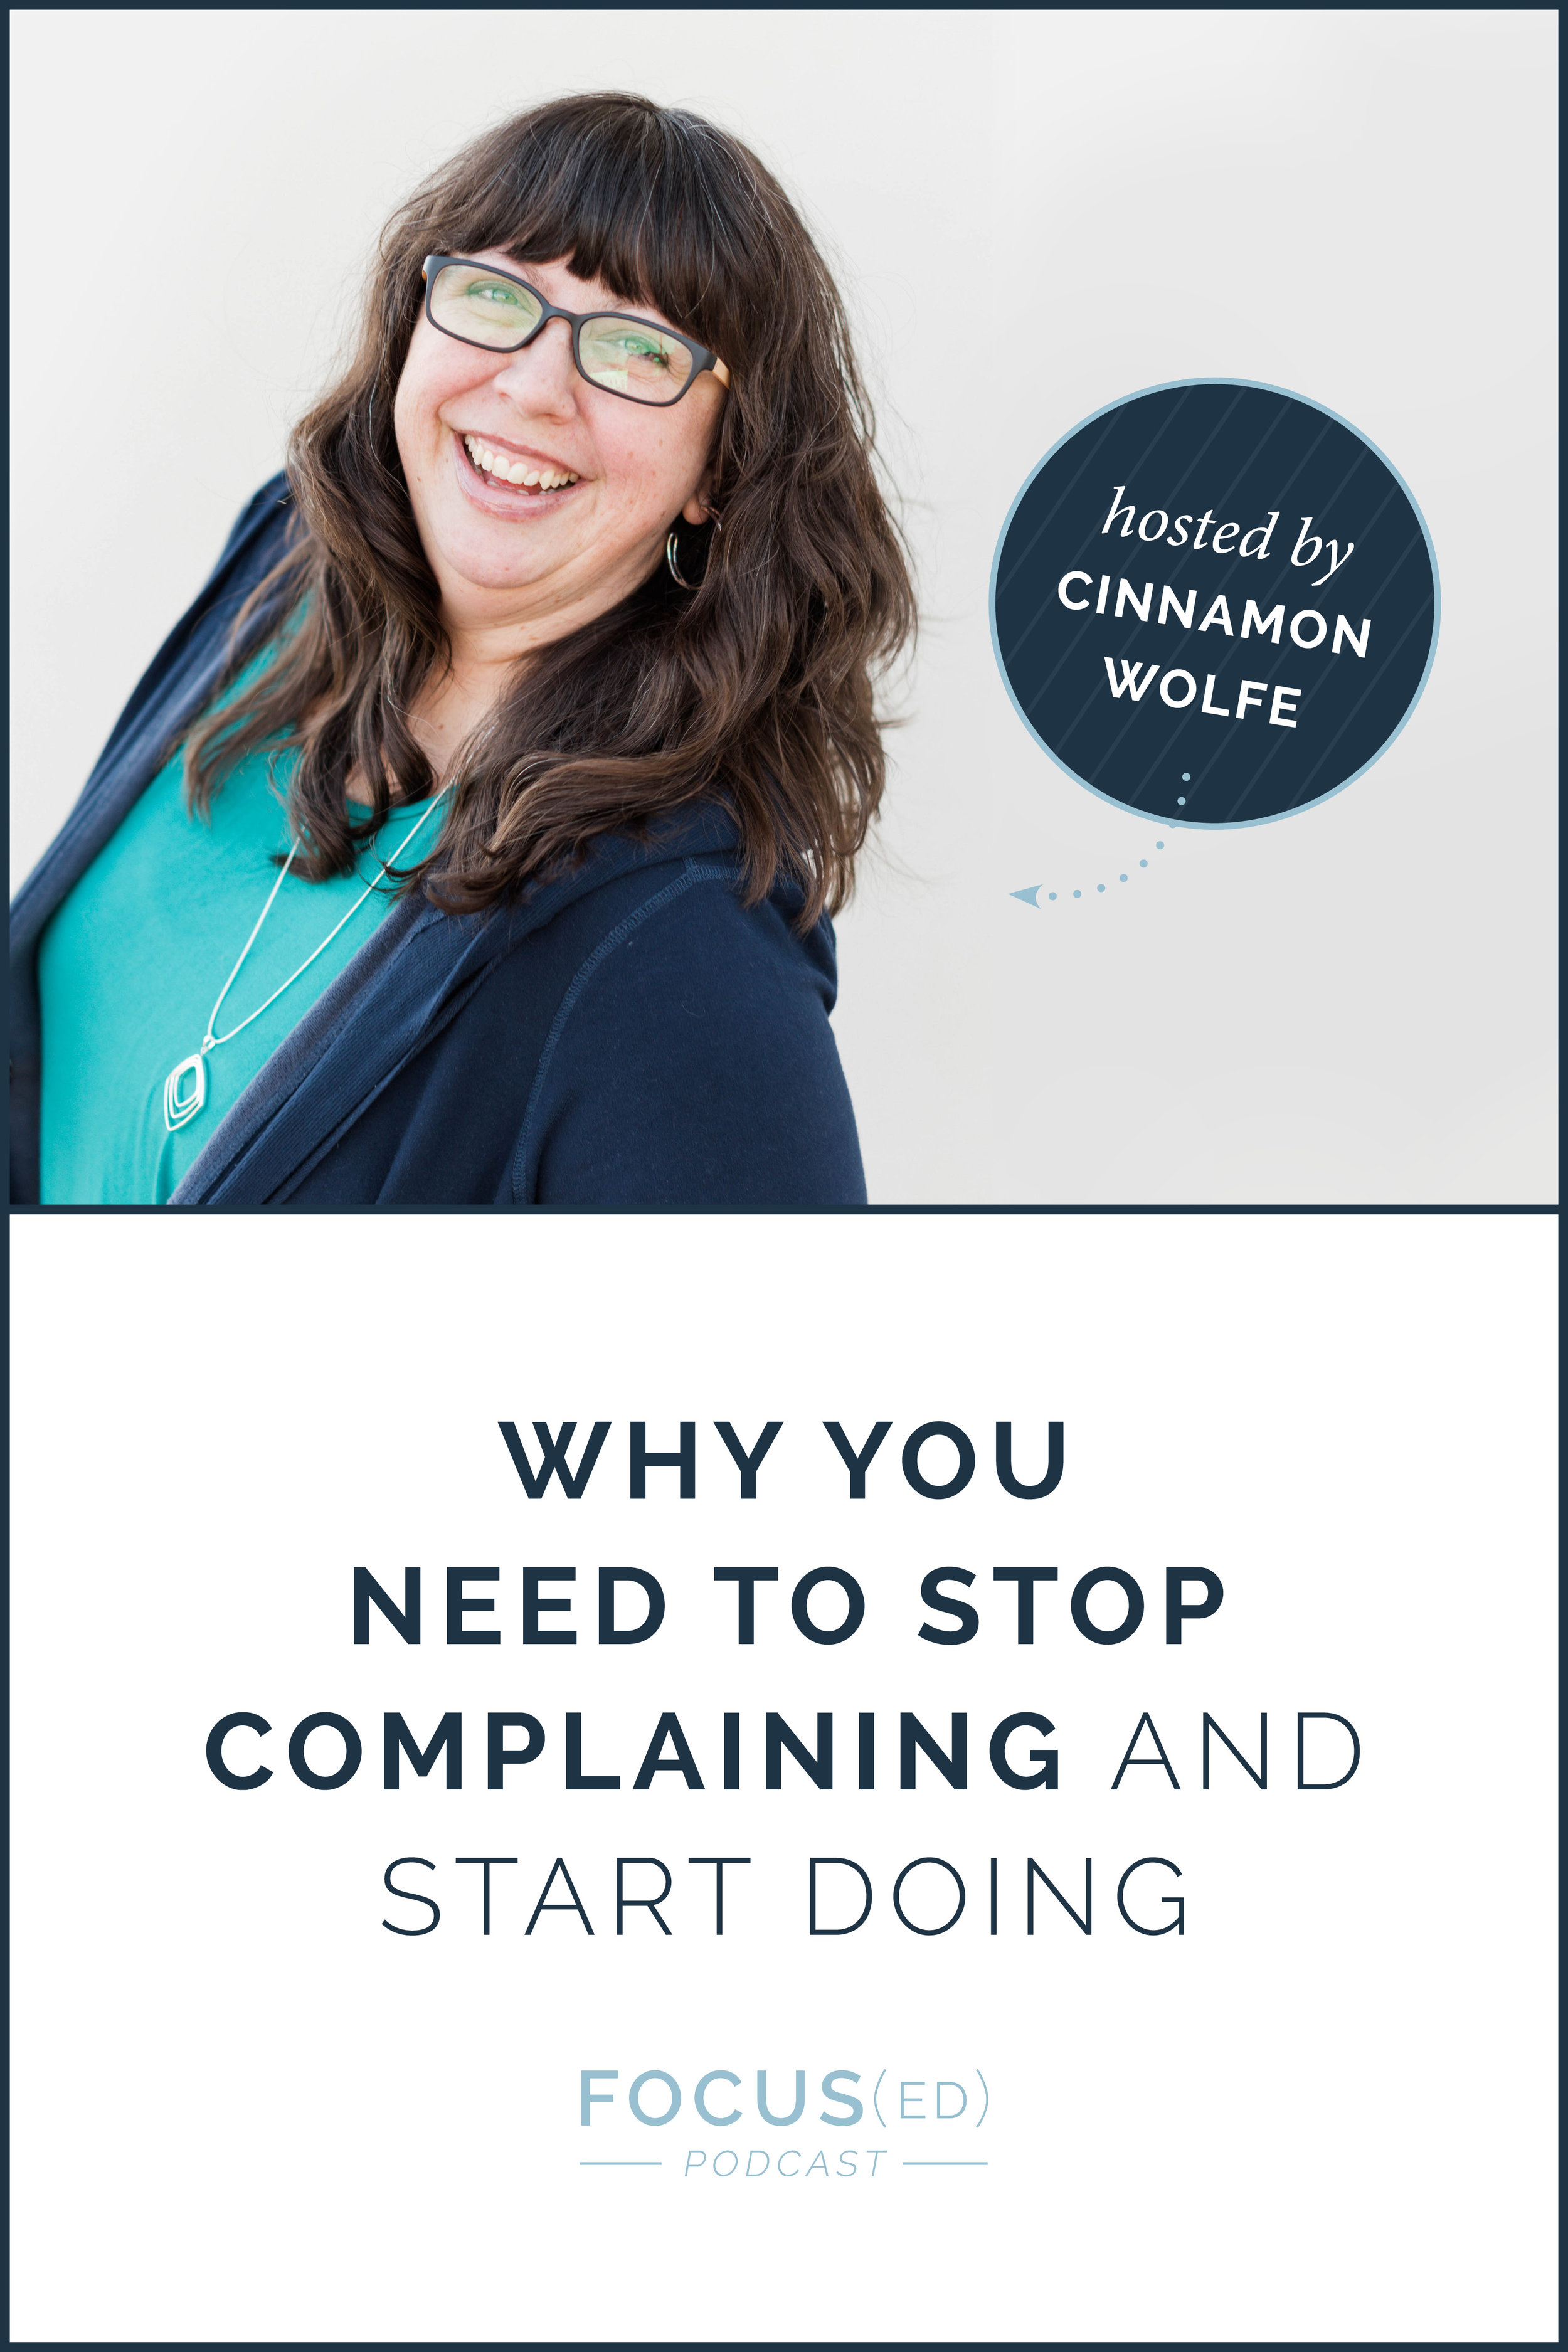 Why you need to stop complaining and start doing | Focused Podcast